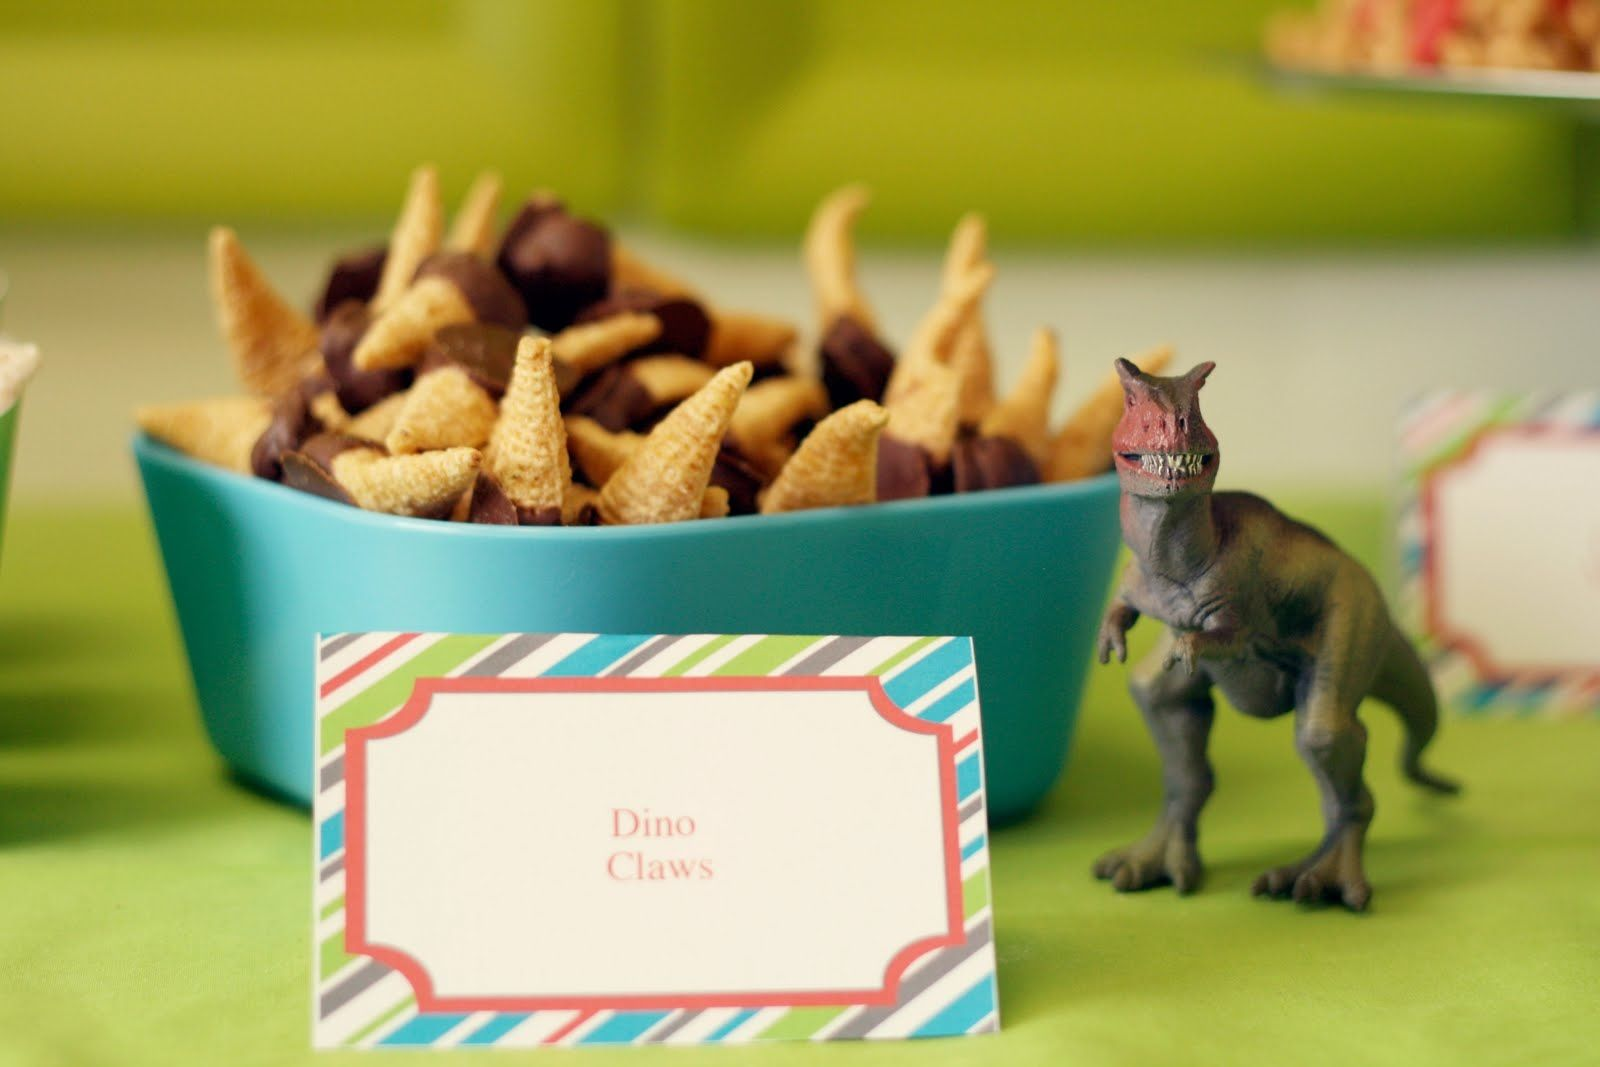 Dinosaur Birthday Party Food Bing Images Dino birthday party